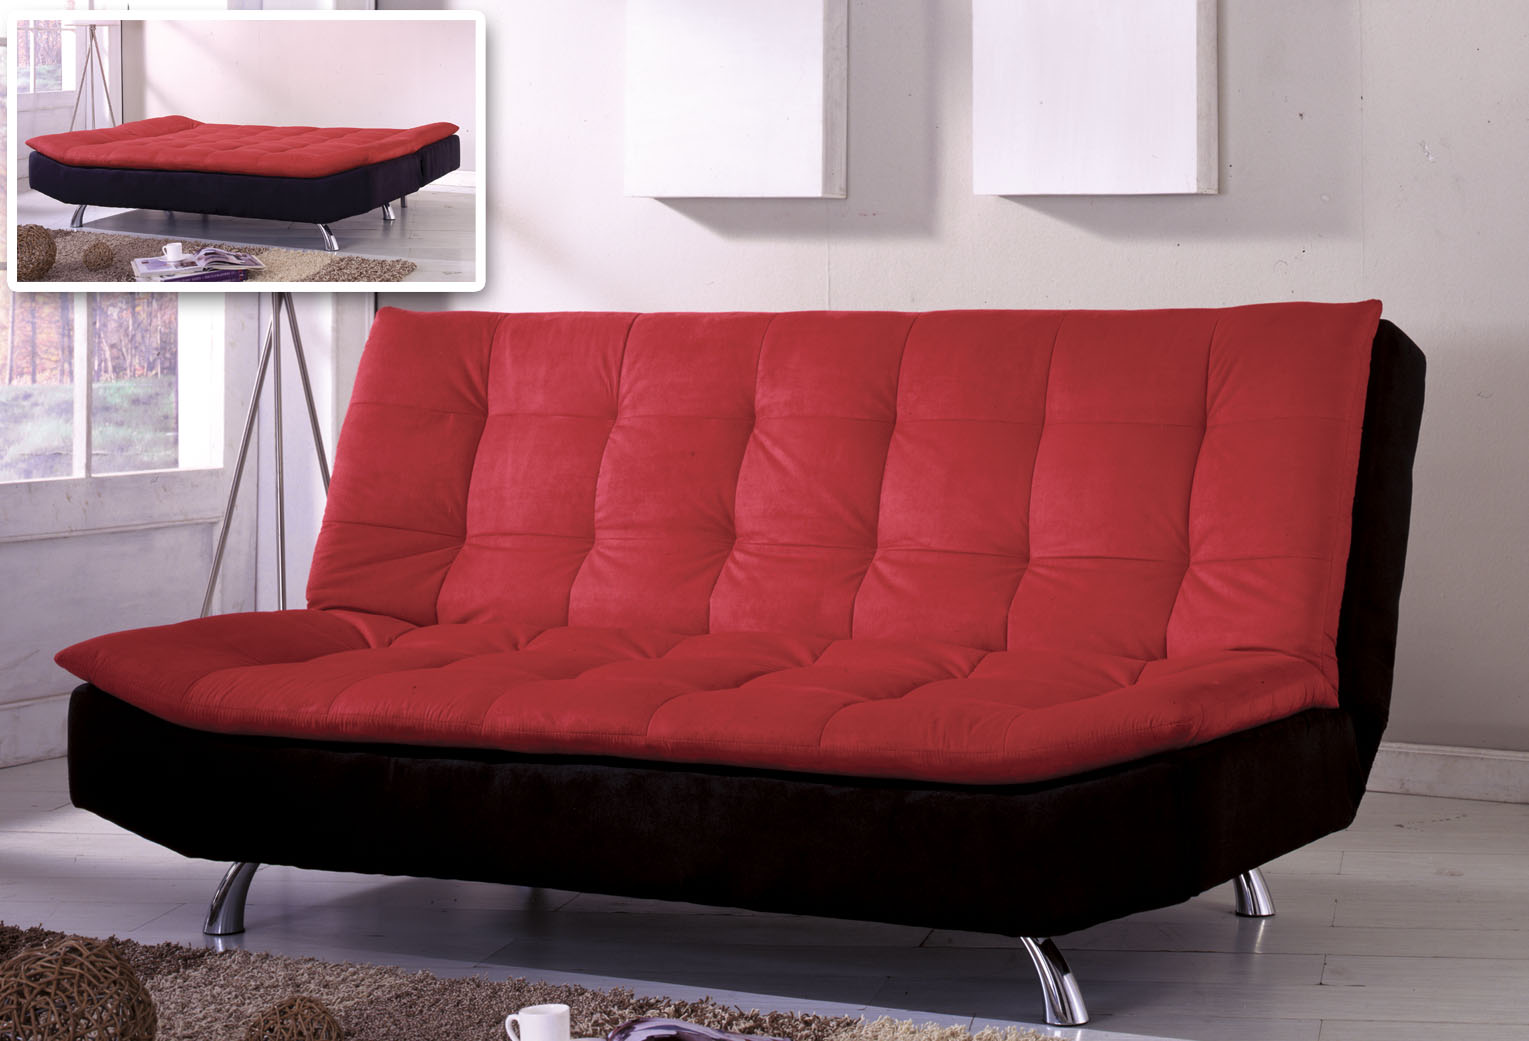 Incredible Futon Couch Bed 6451 Andrewgaddart Wooden Chair Designs For Living Room Andrewgaddartcom